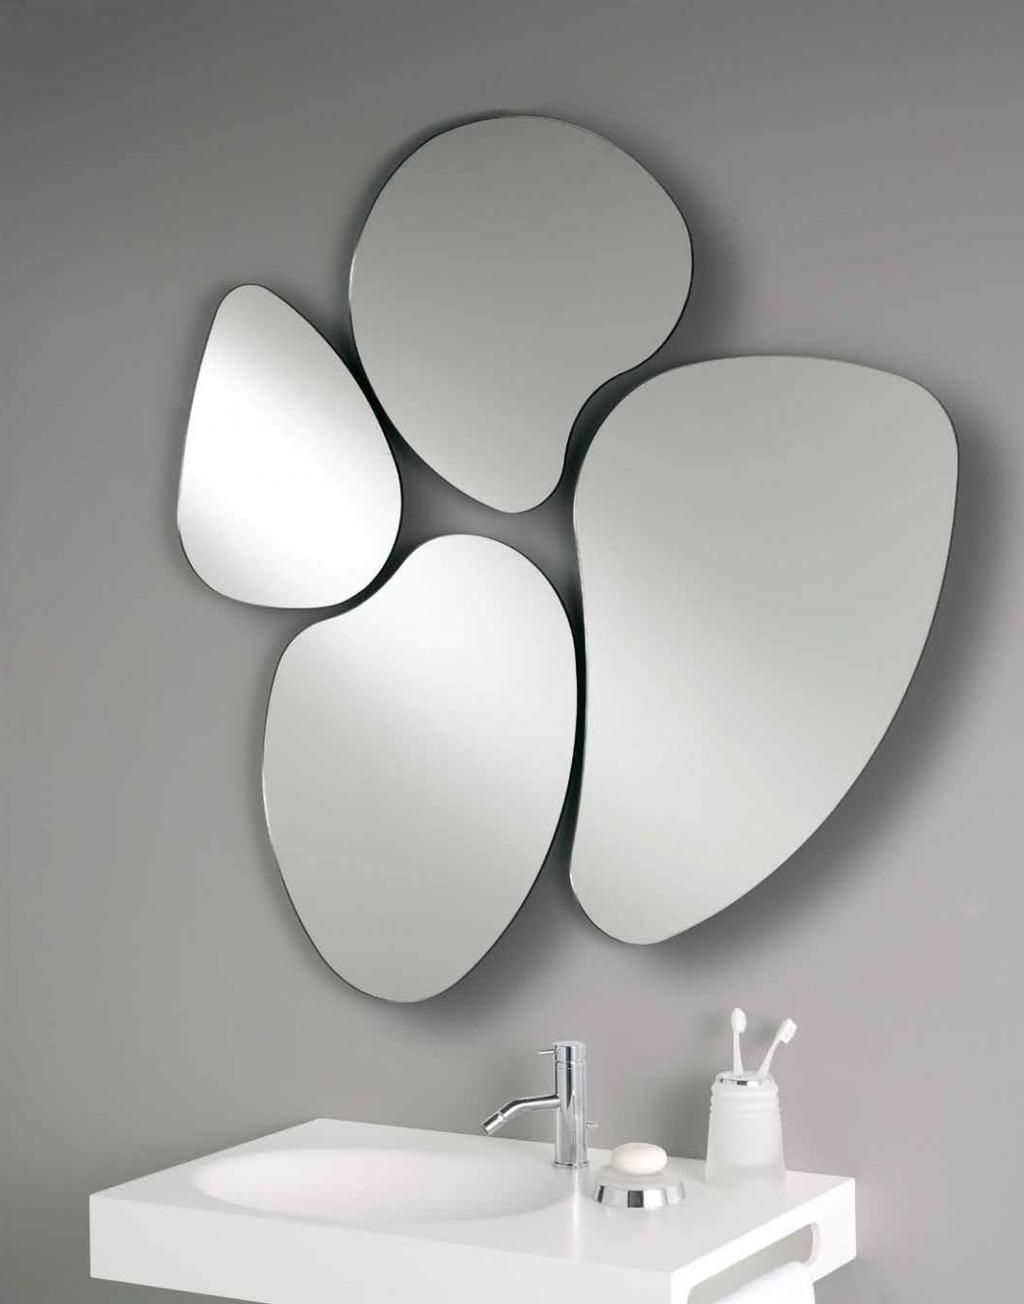 Funky Shaped Bathroom Mirrors | Bathroom Decor | Pinterest ...